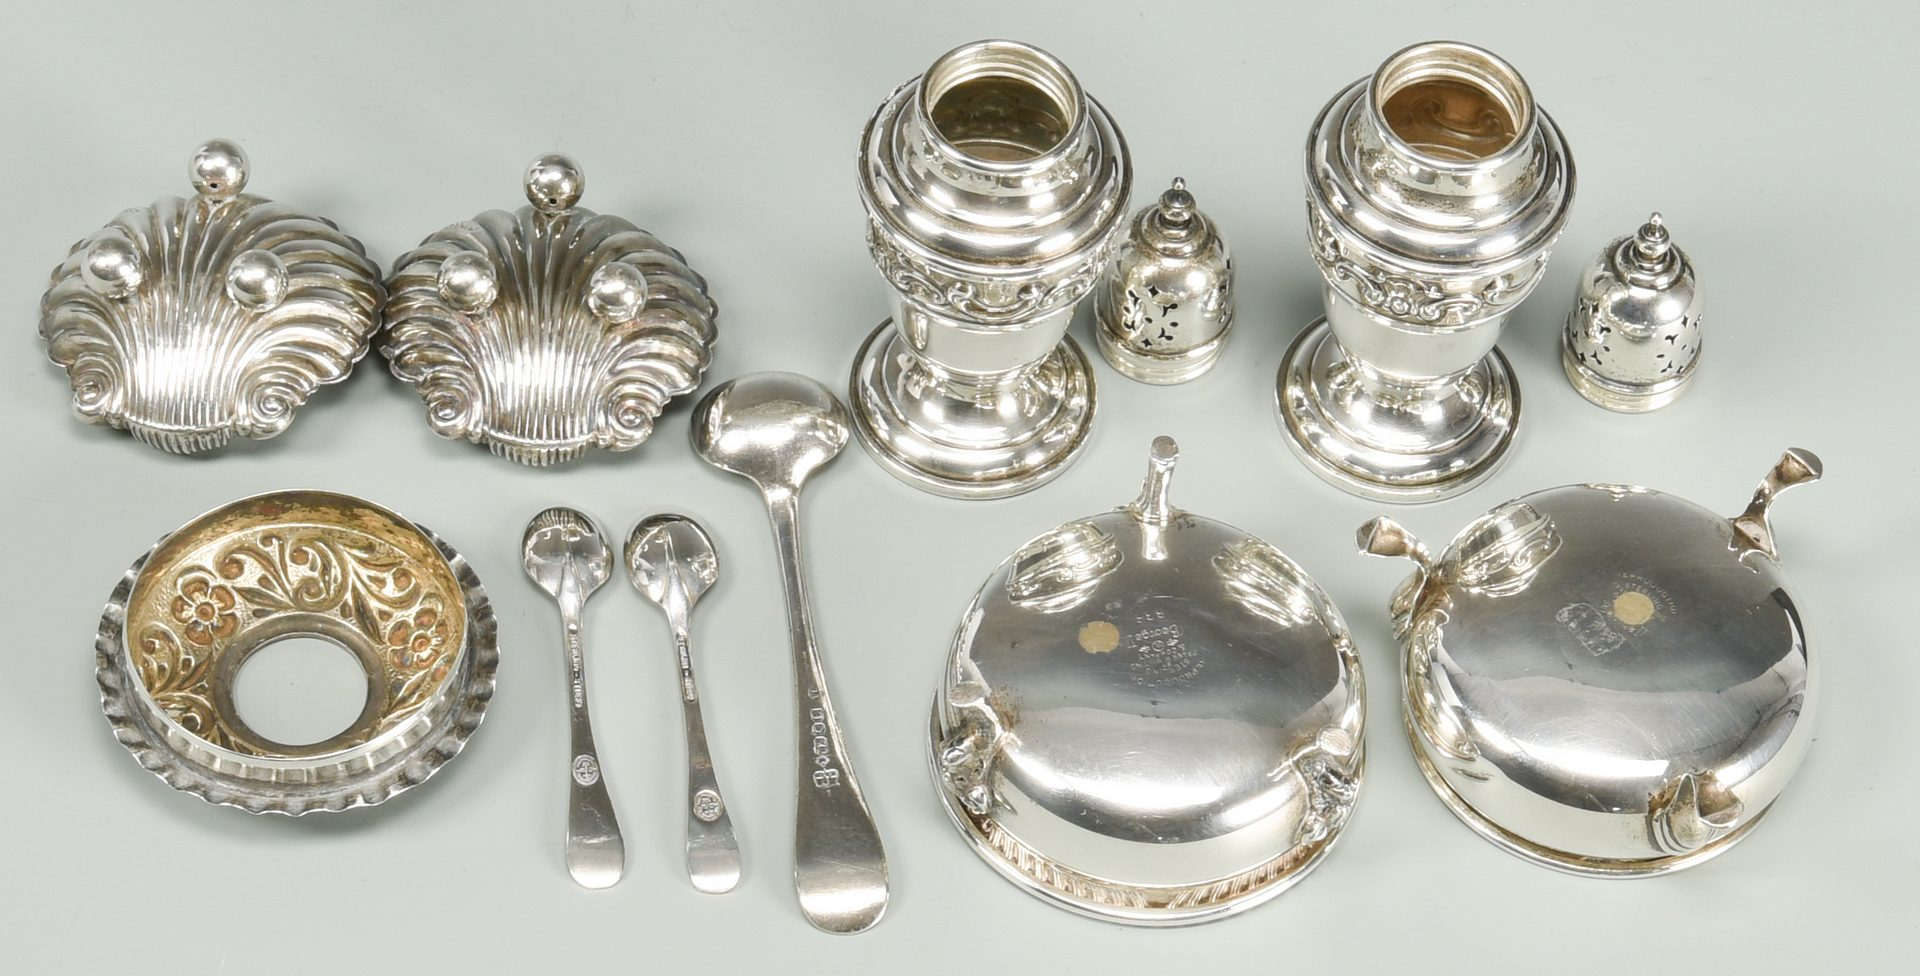 Lot 48: Group of Collectibles incl Pottery, Sterling